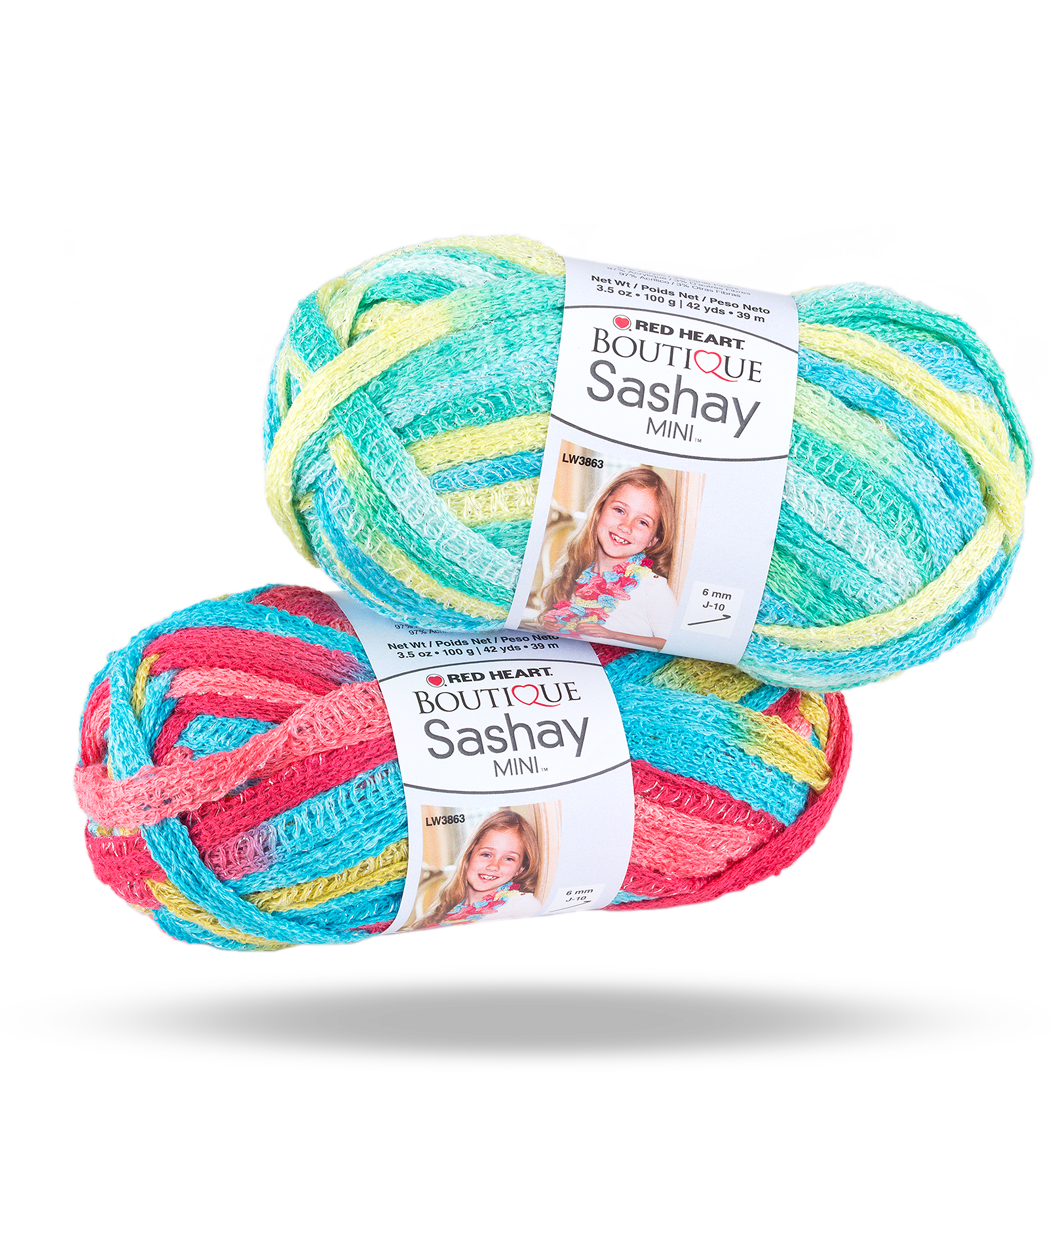 Boutique Sashay Mini Yarn | Red Heart New for kids - I made two ...